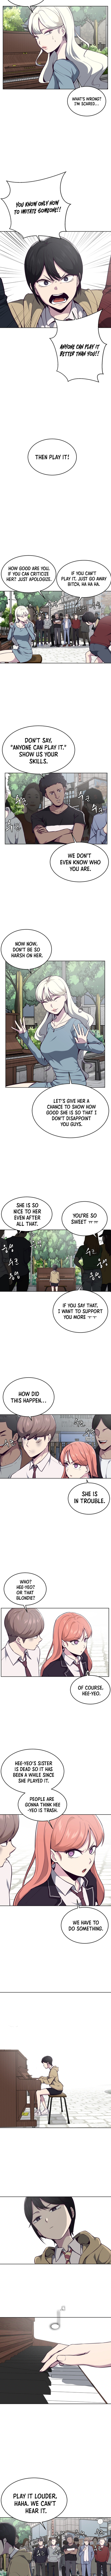 The Boy Of Death Chapter 34: Genius Pianist page 6 - Mangakakalots.com